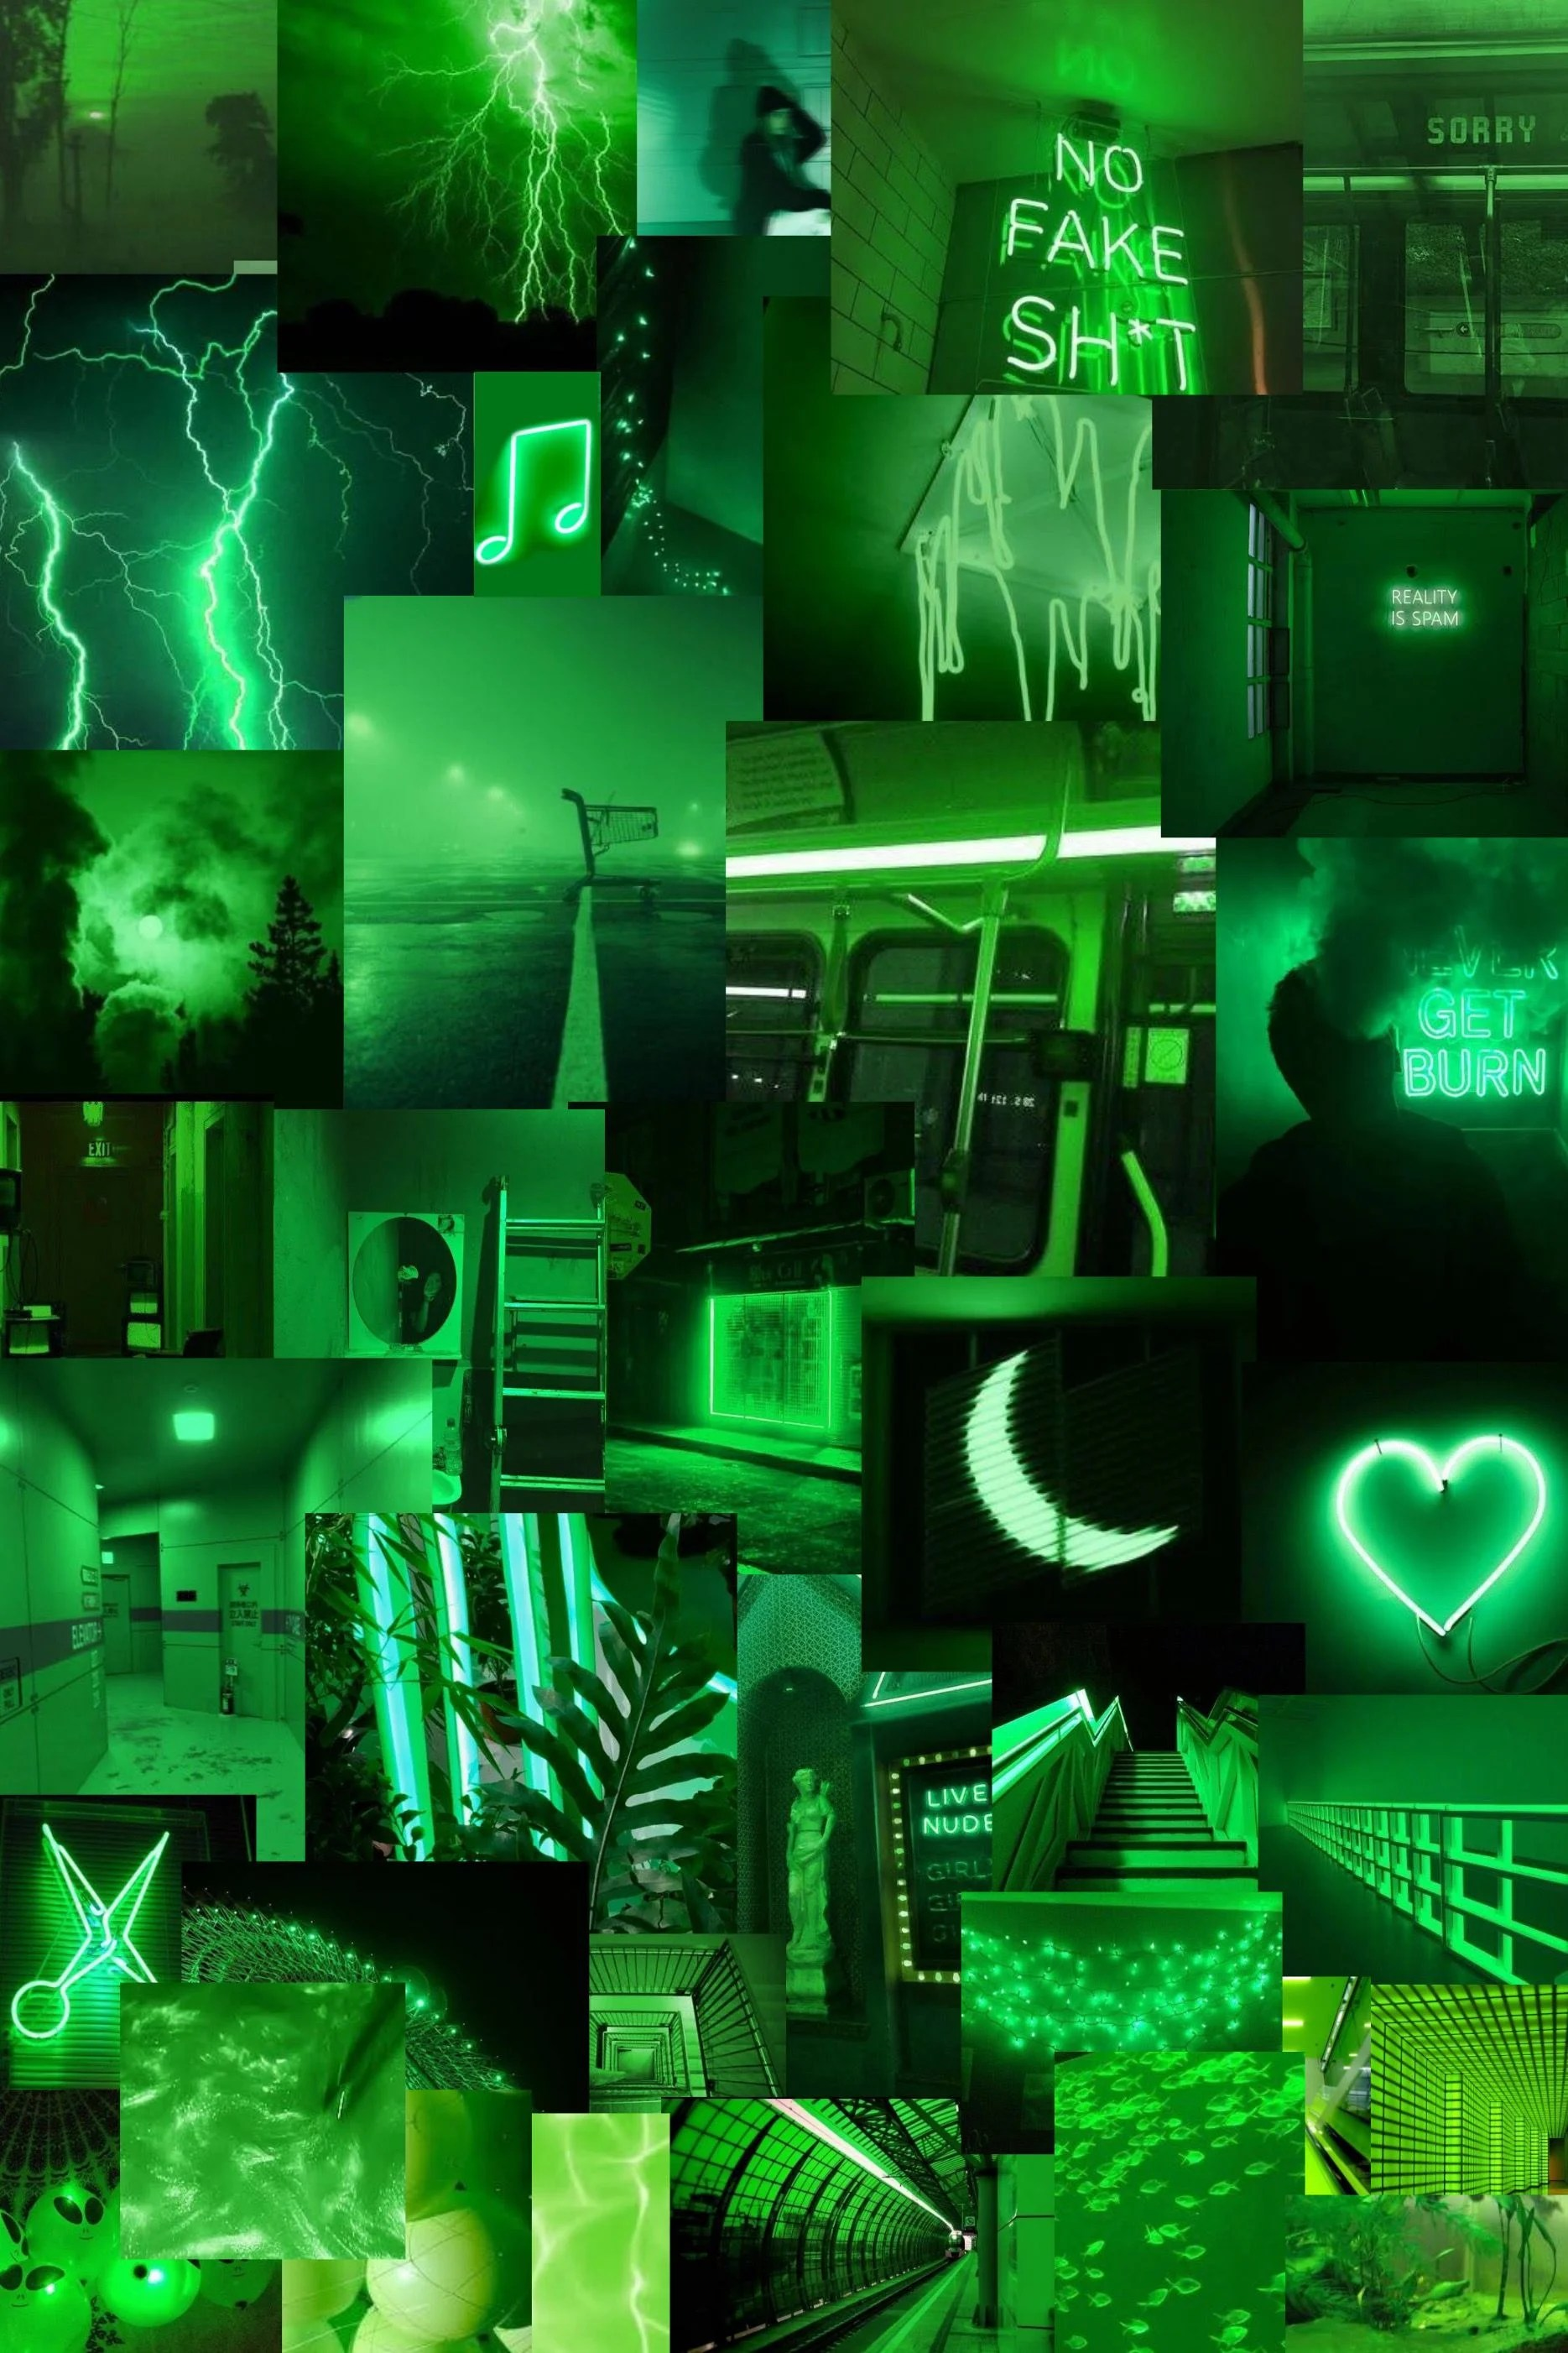 Sep 12, 2020· trending best roblox avatars 2020 boy : Neon Green Aesthetic Wallpapers For Laptop - pic-woot